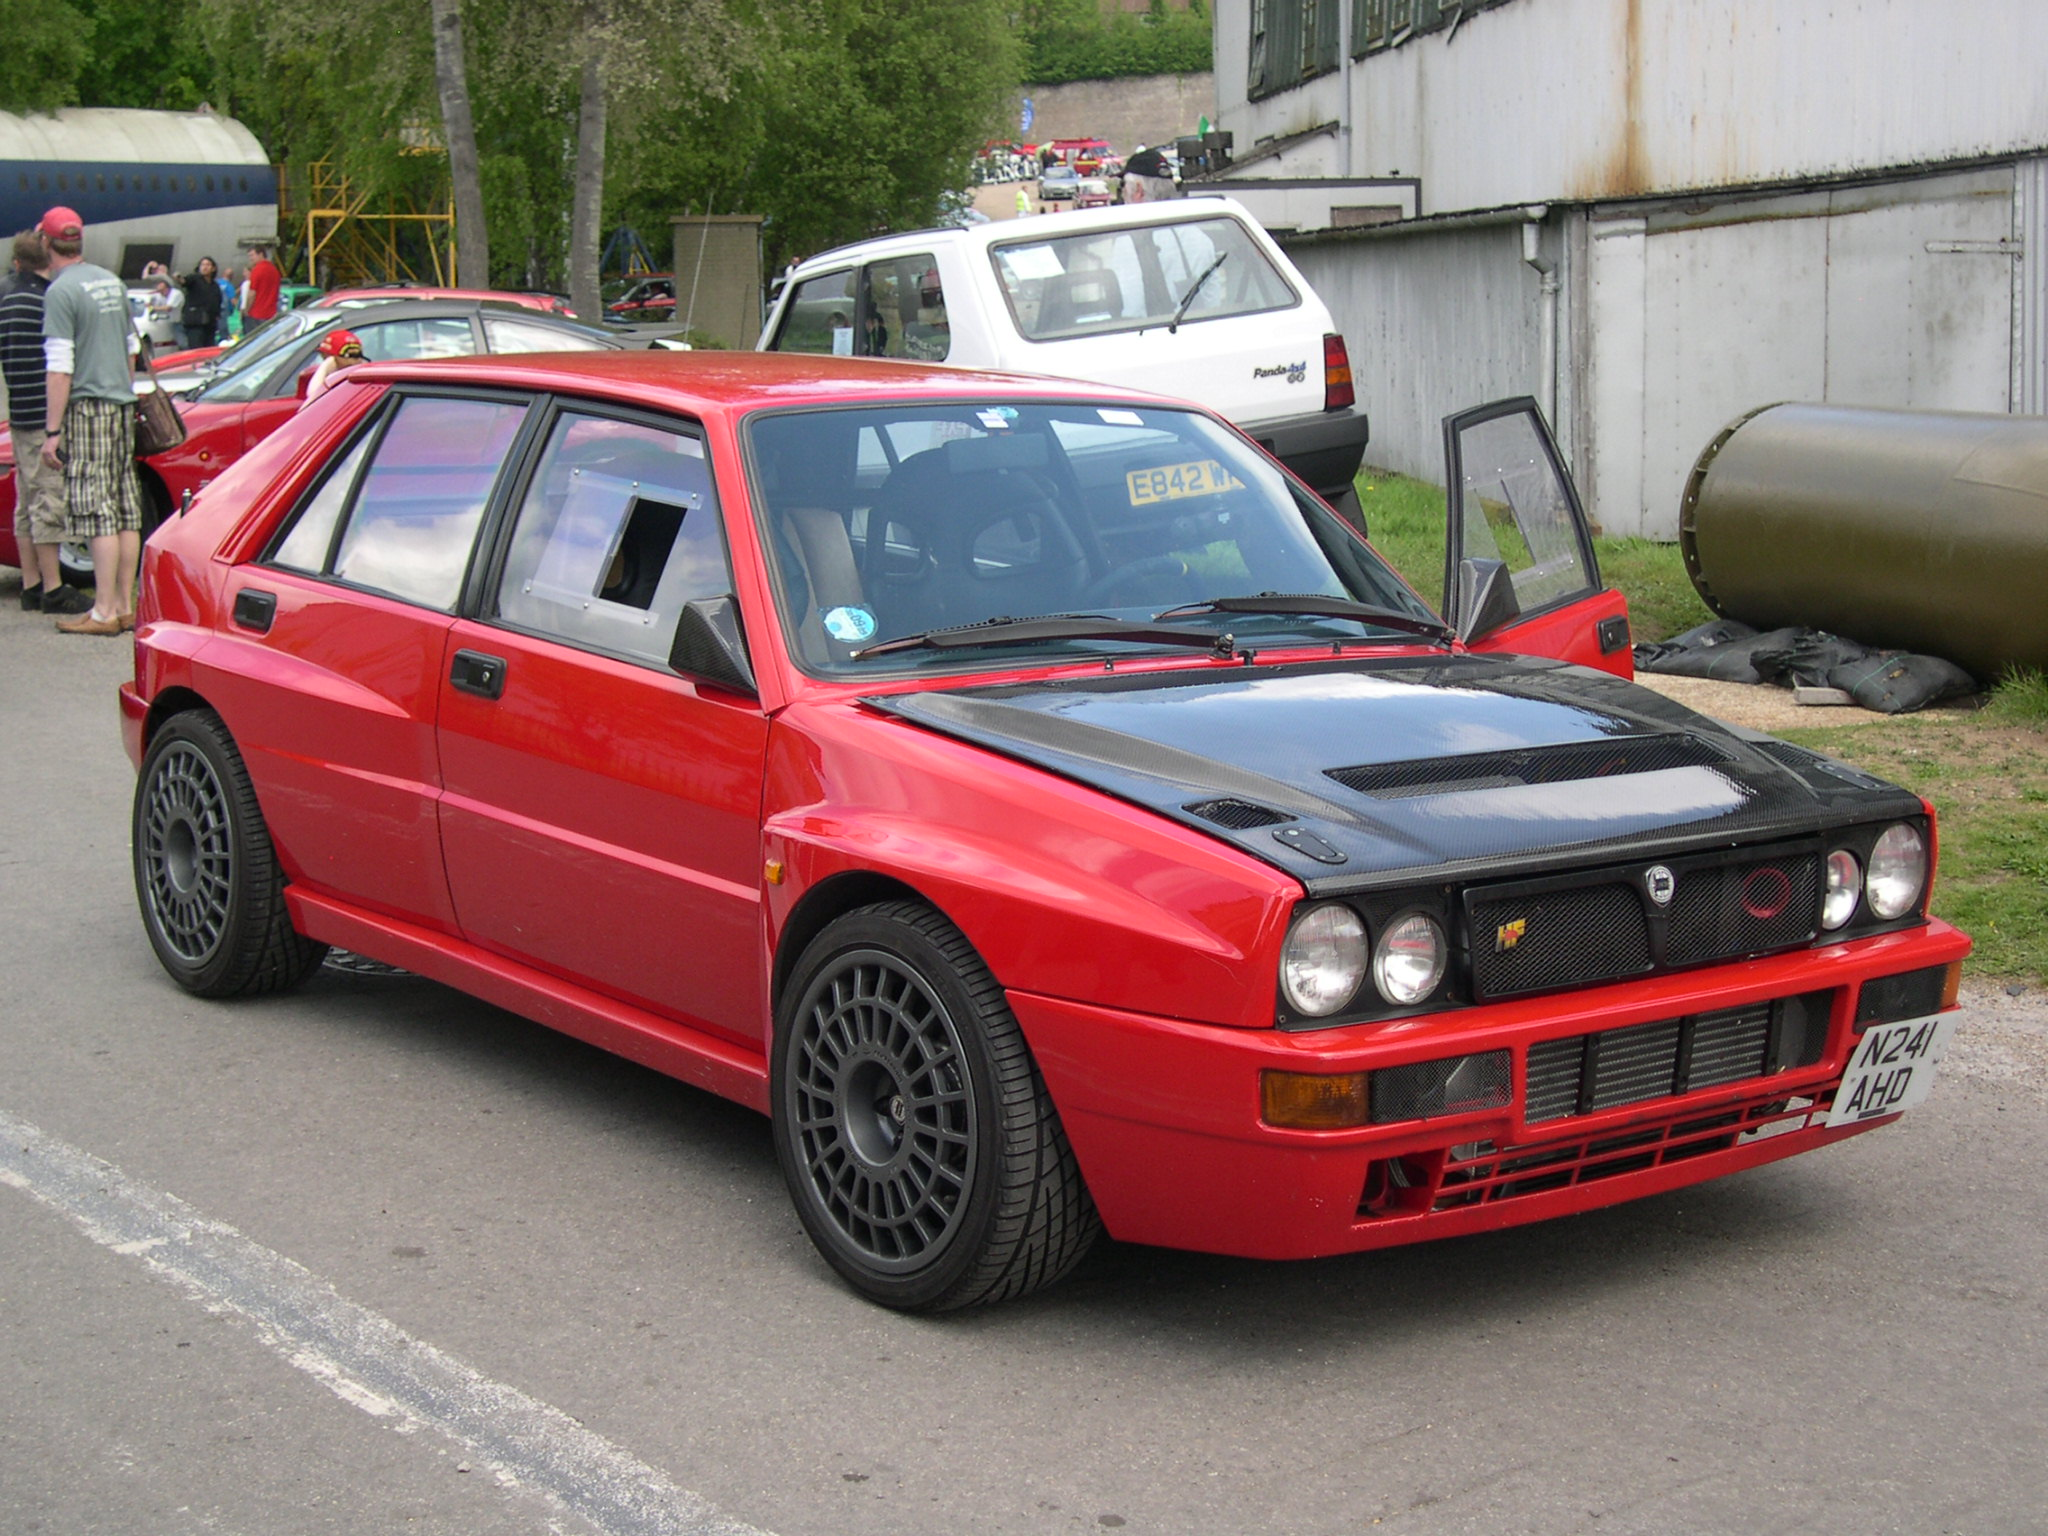 1000 images about lancia delta evo on pinterest posts cars and wheels. Black Bedroom Furniture Sets. Home Design Ideas